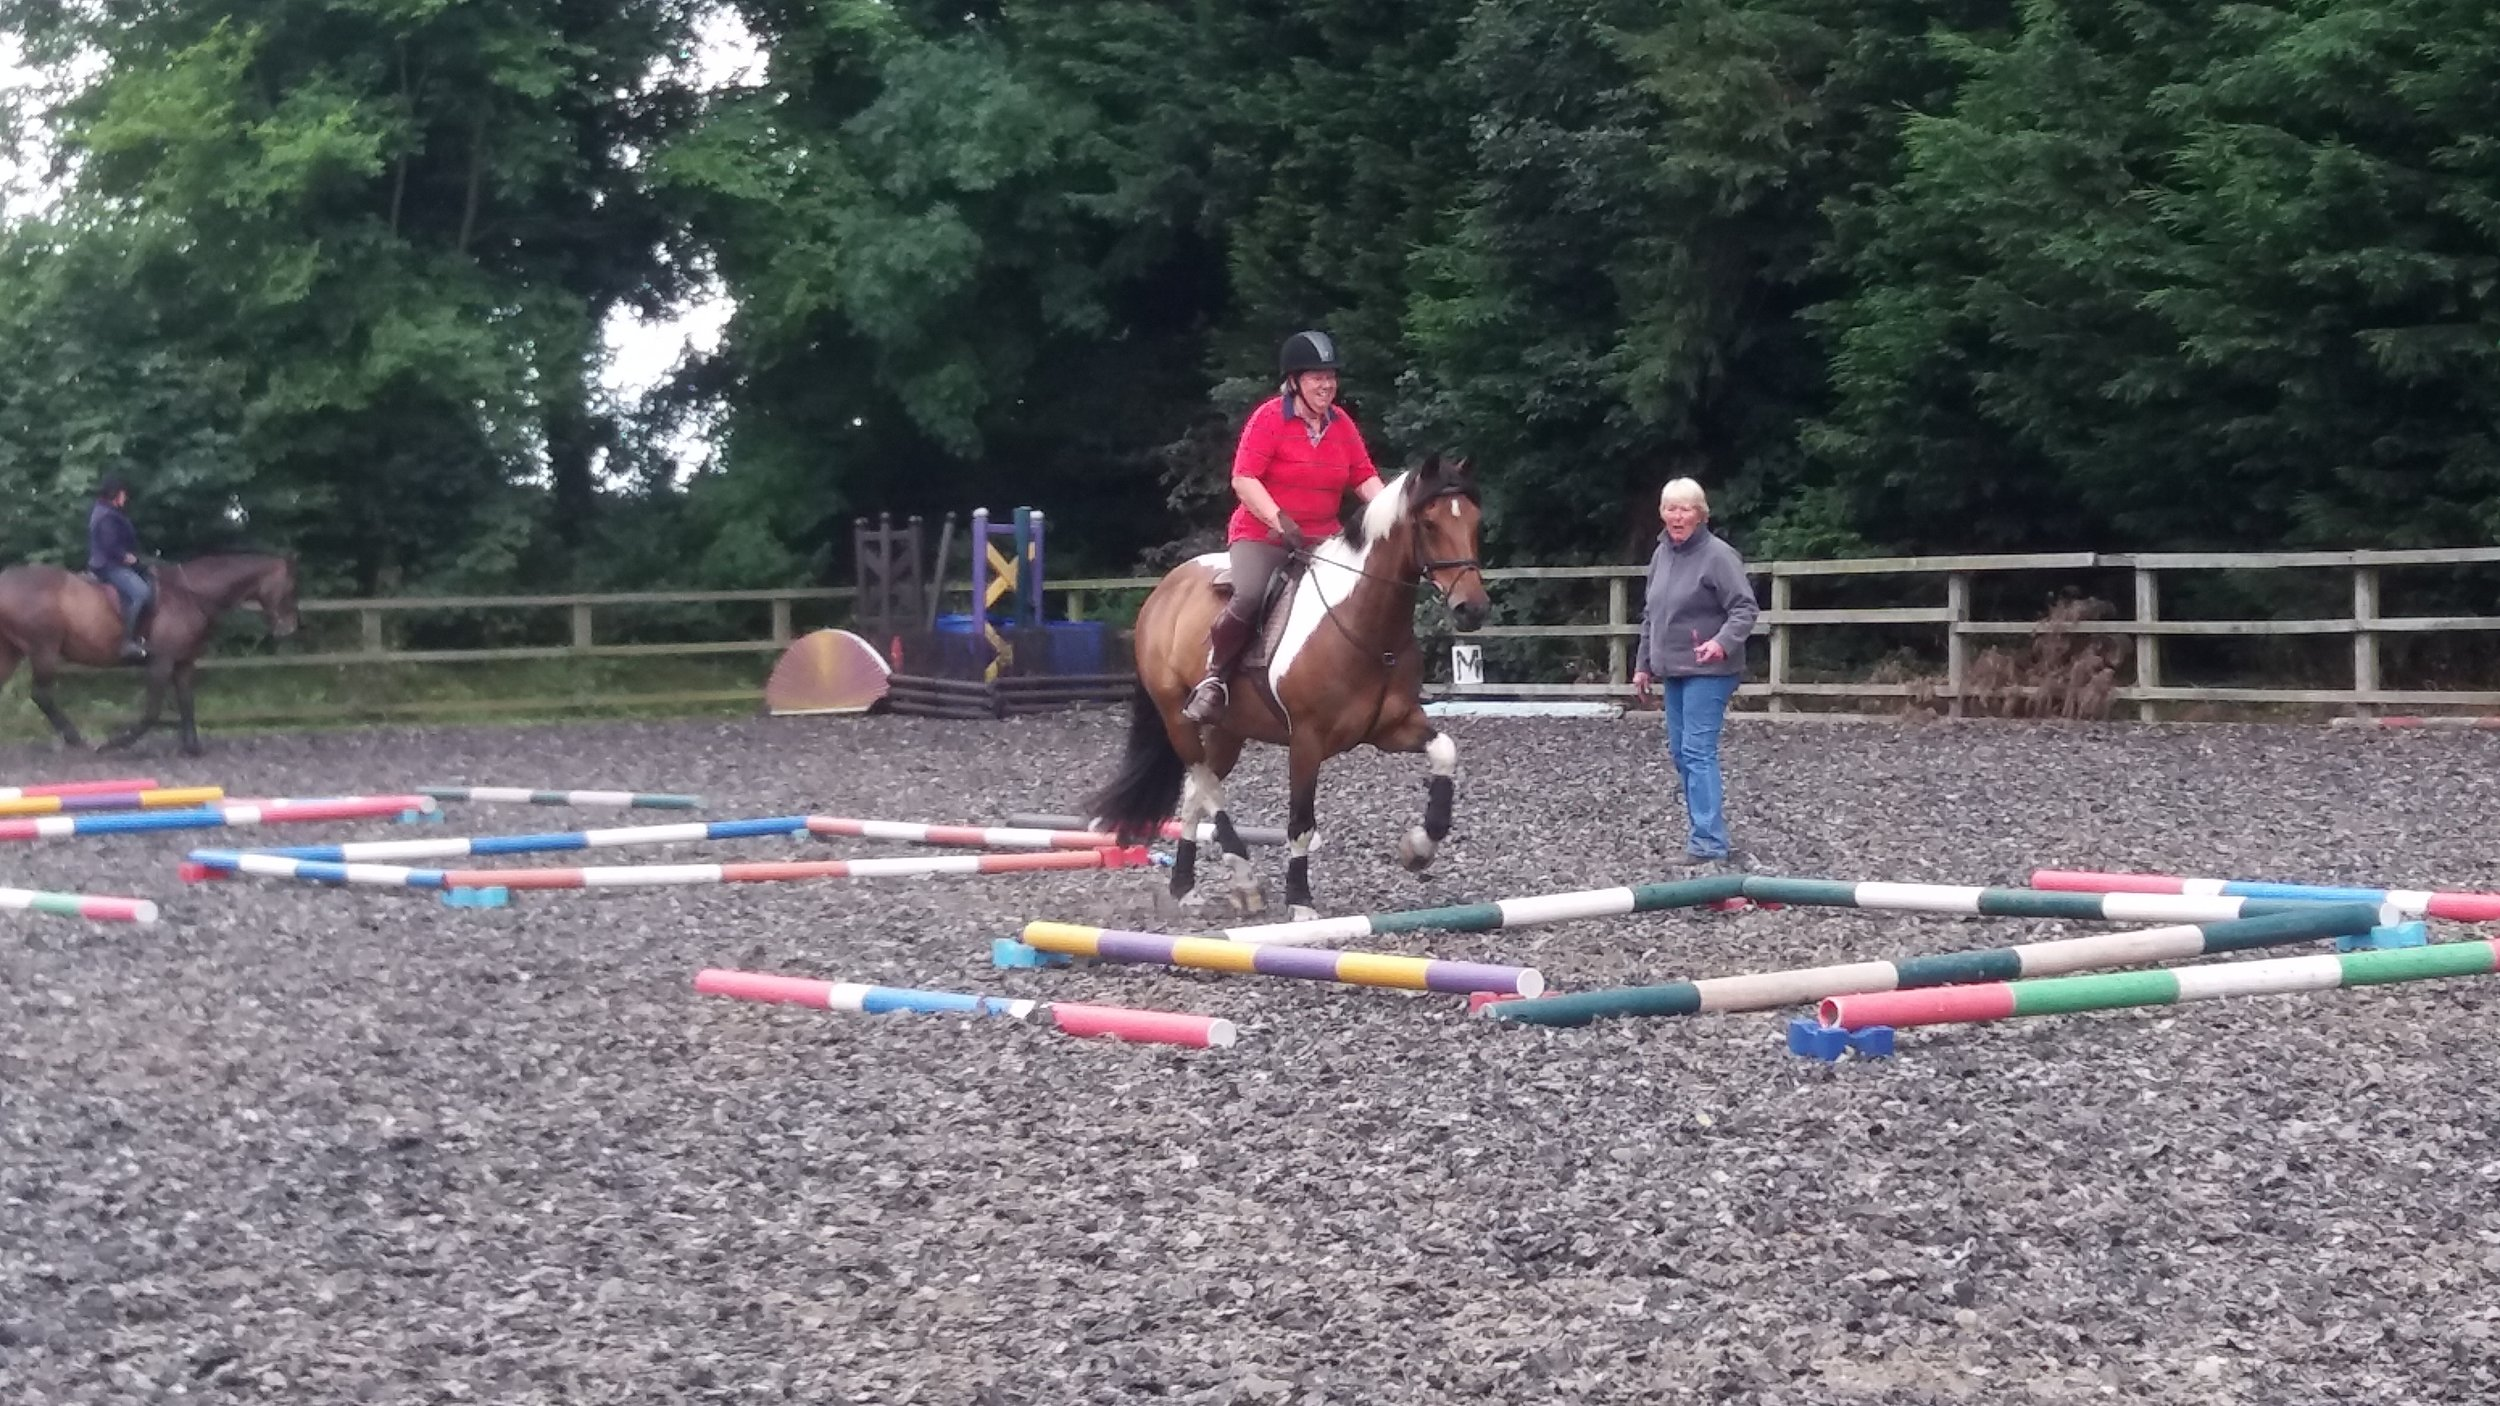 Equigym Clinic July 2017 - hard work but still smiling!